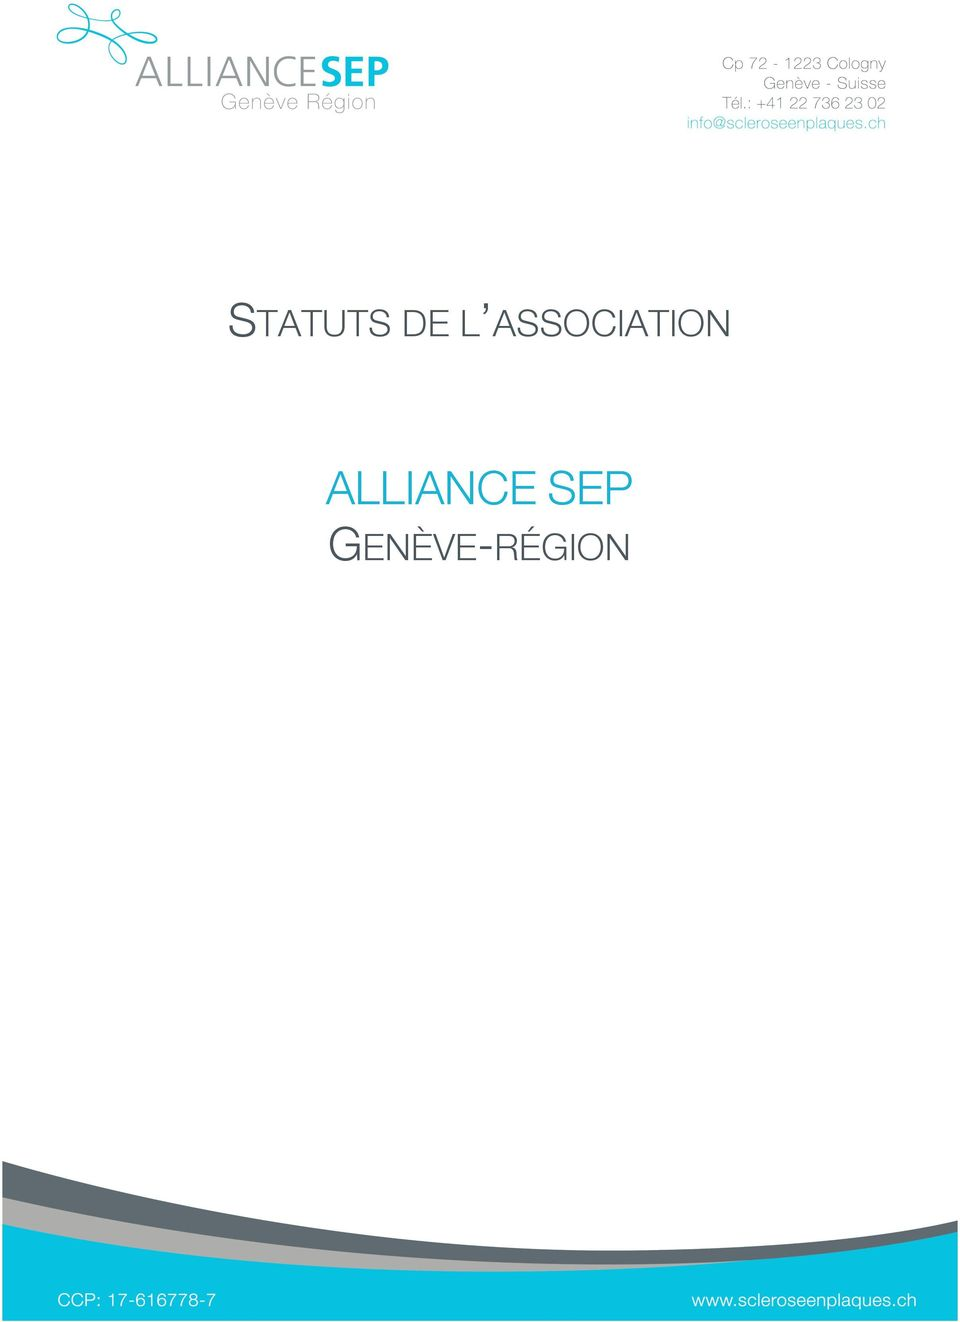 ALLIANCE SEP